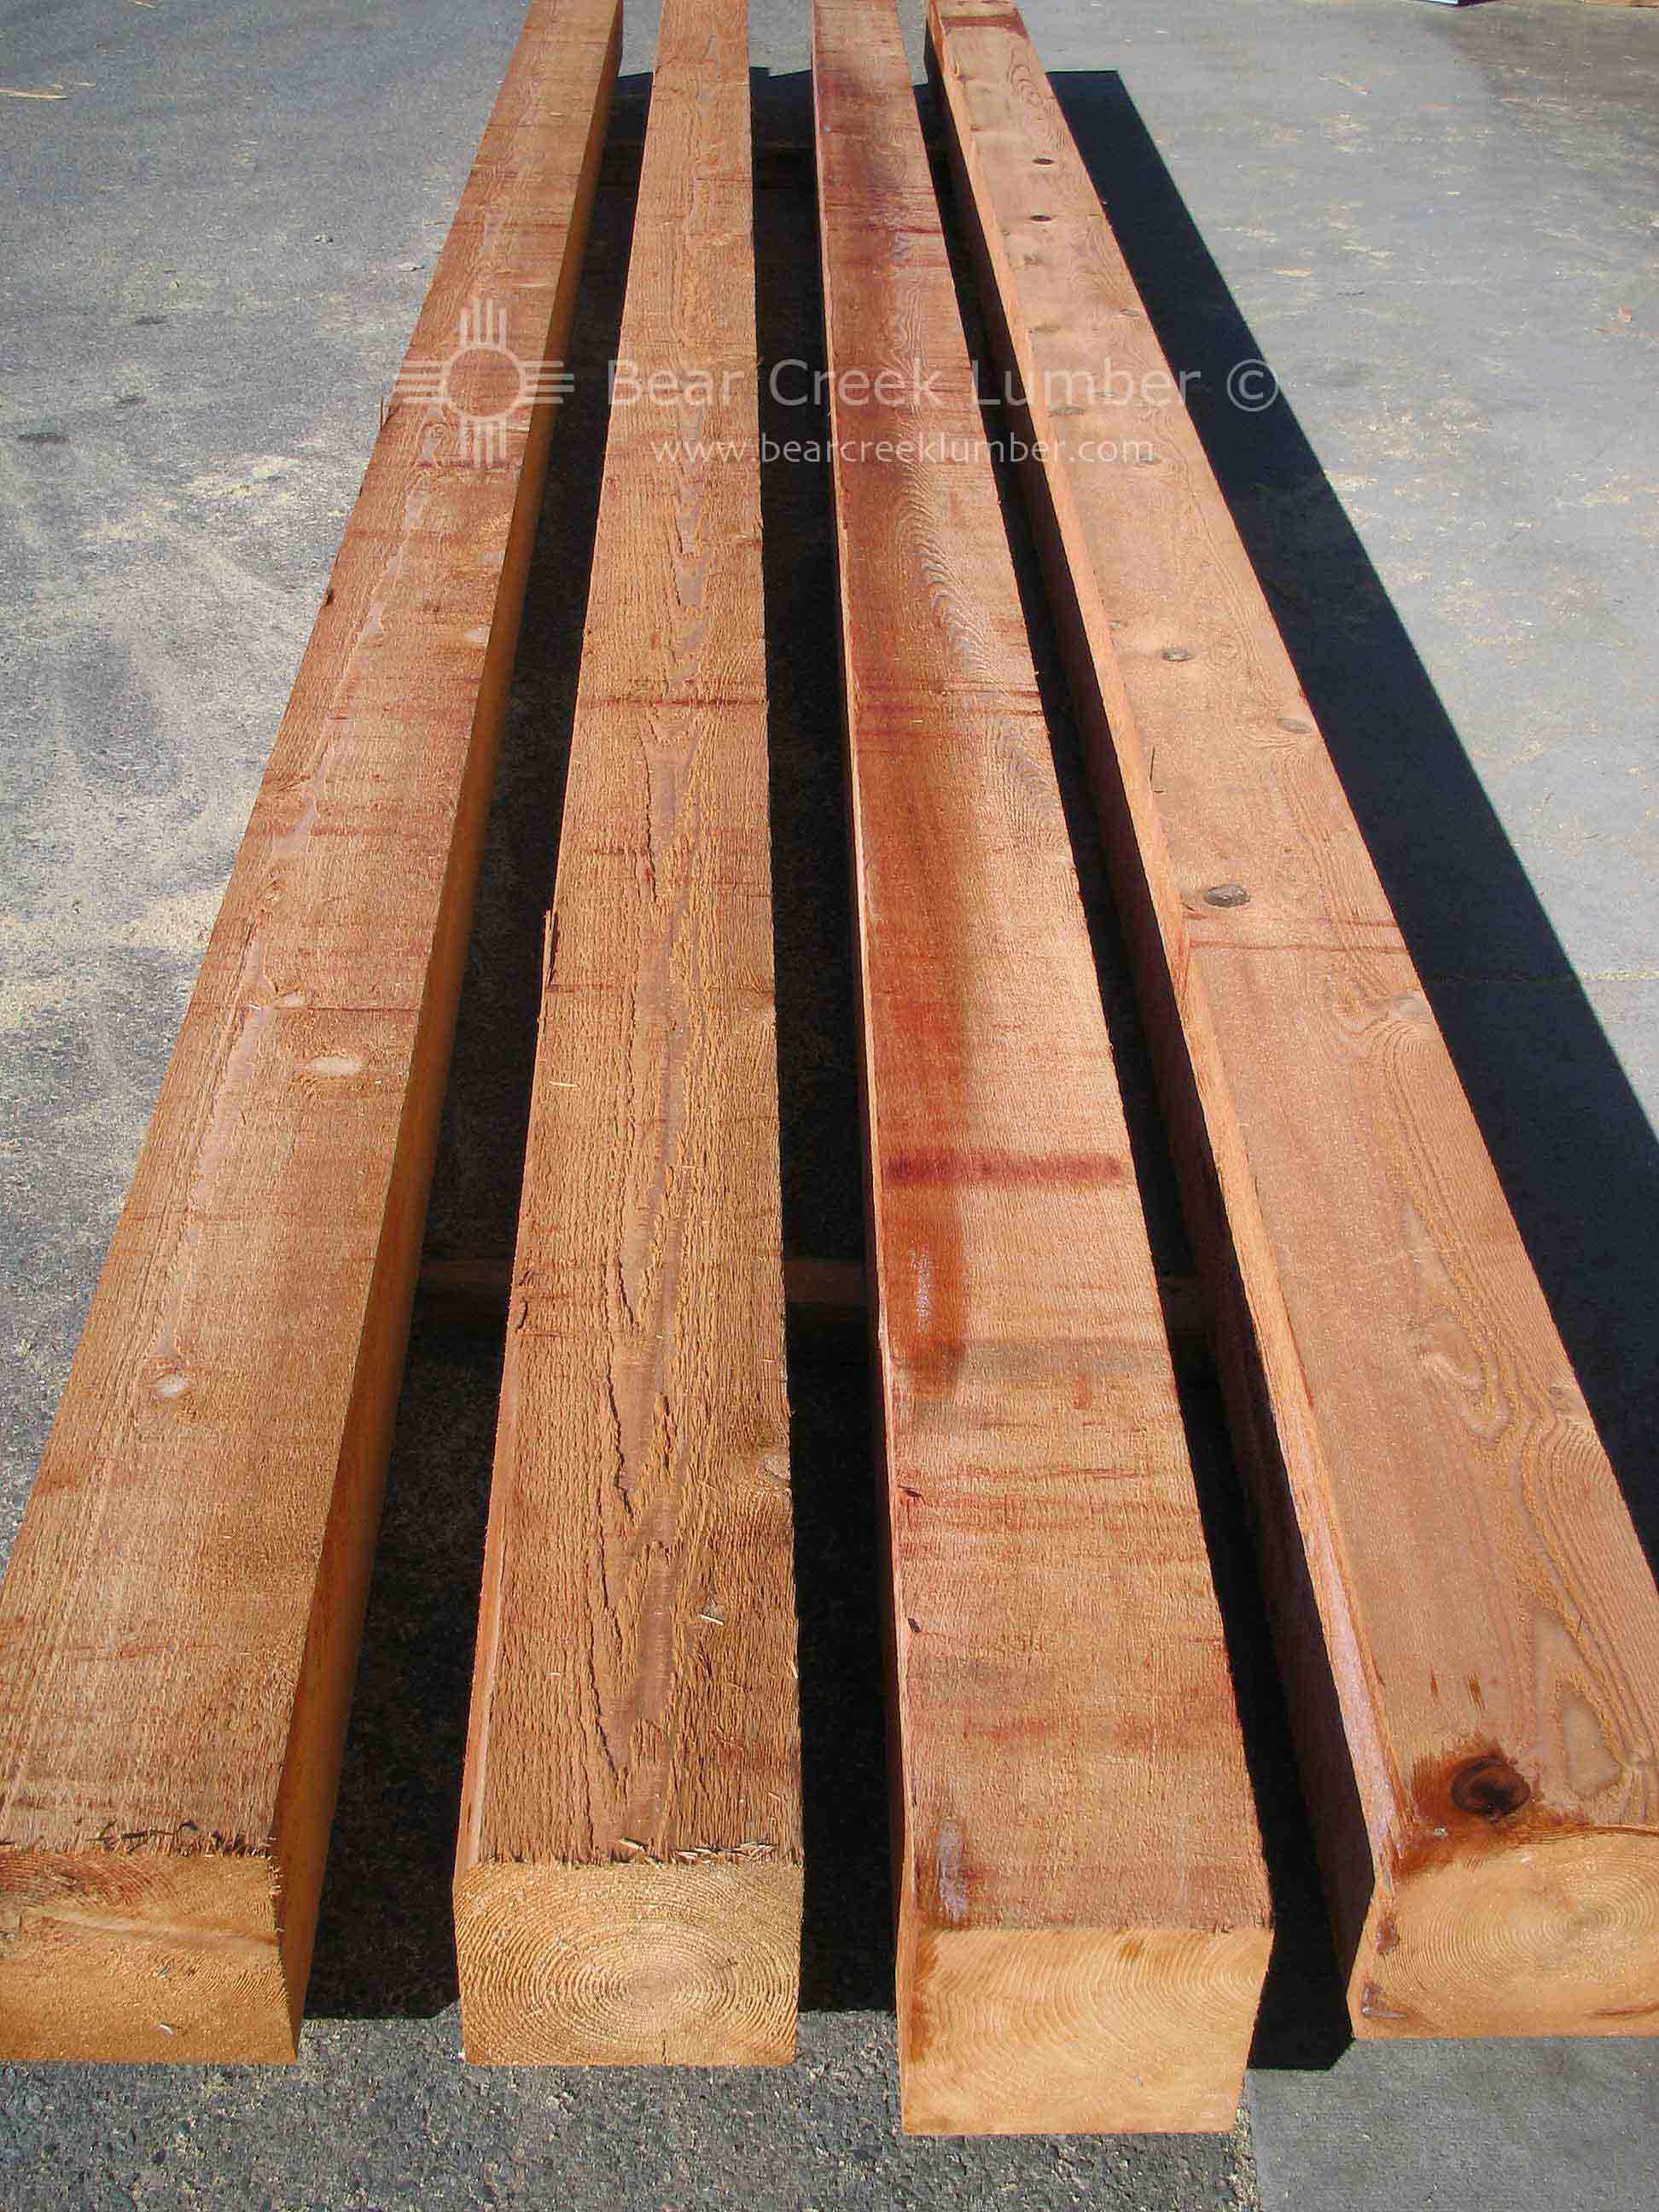 Bear Creek Lumber Western Red Cedar Post Amp Beams